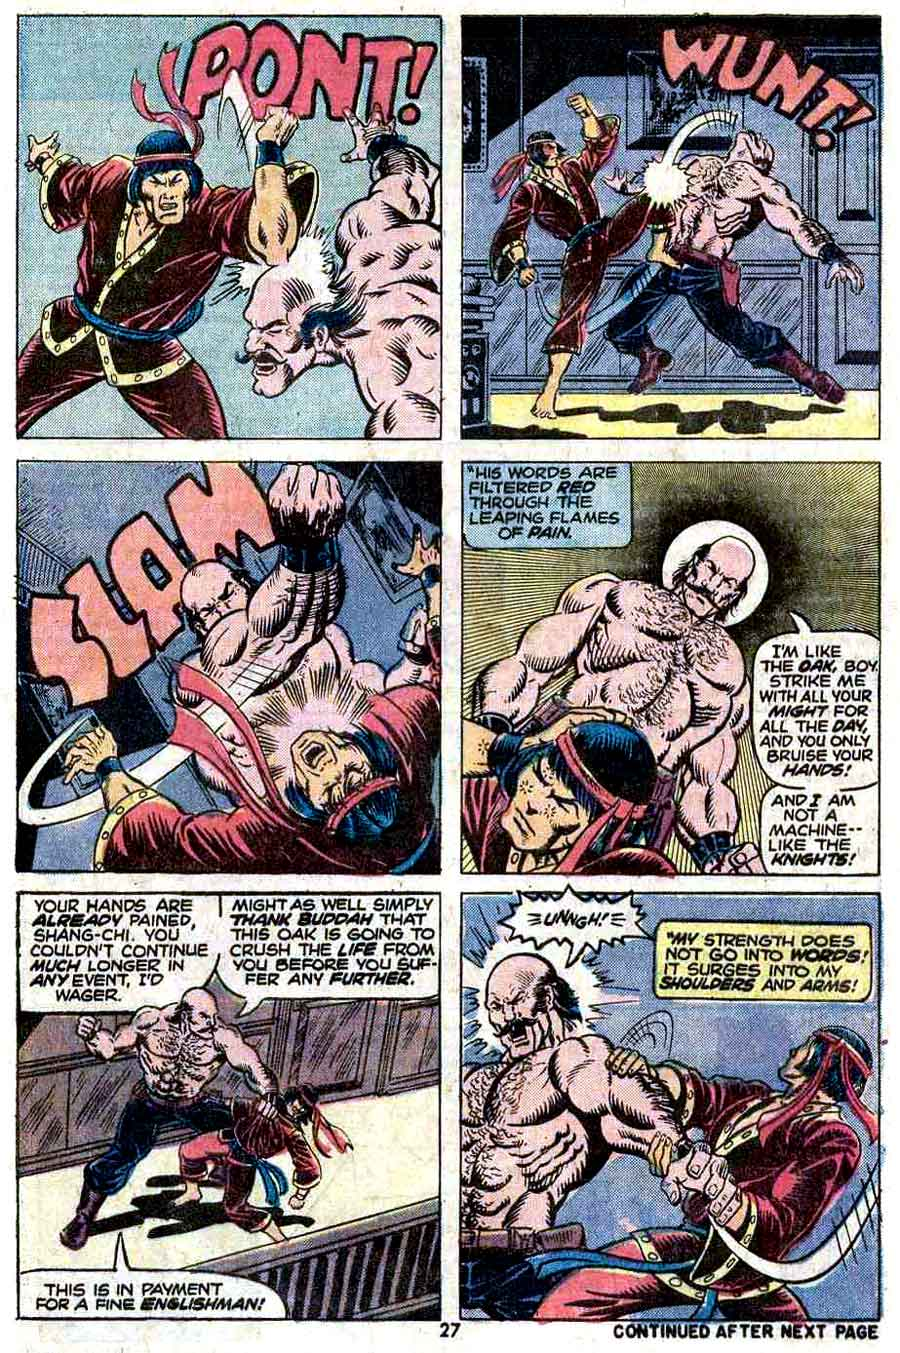 Master of Kung Fu v1 #17 marvel 1970s bronze age comic book page art by Jim Starlin